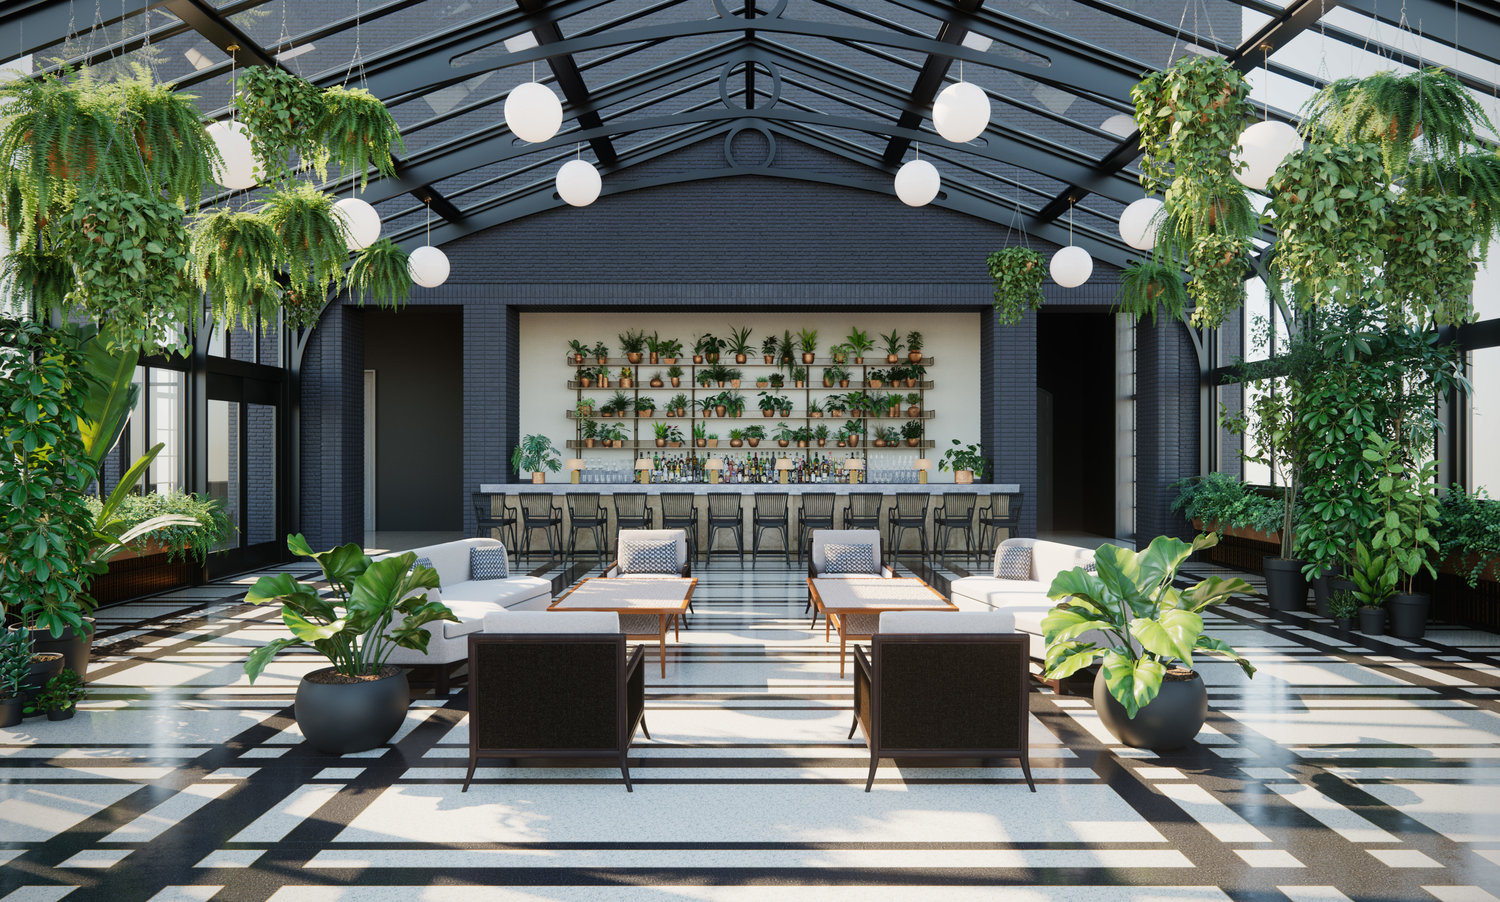 Shinola bursts onto the hospitality scene with its new Detroit Hotel